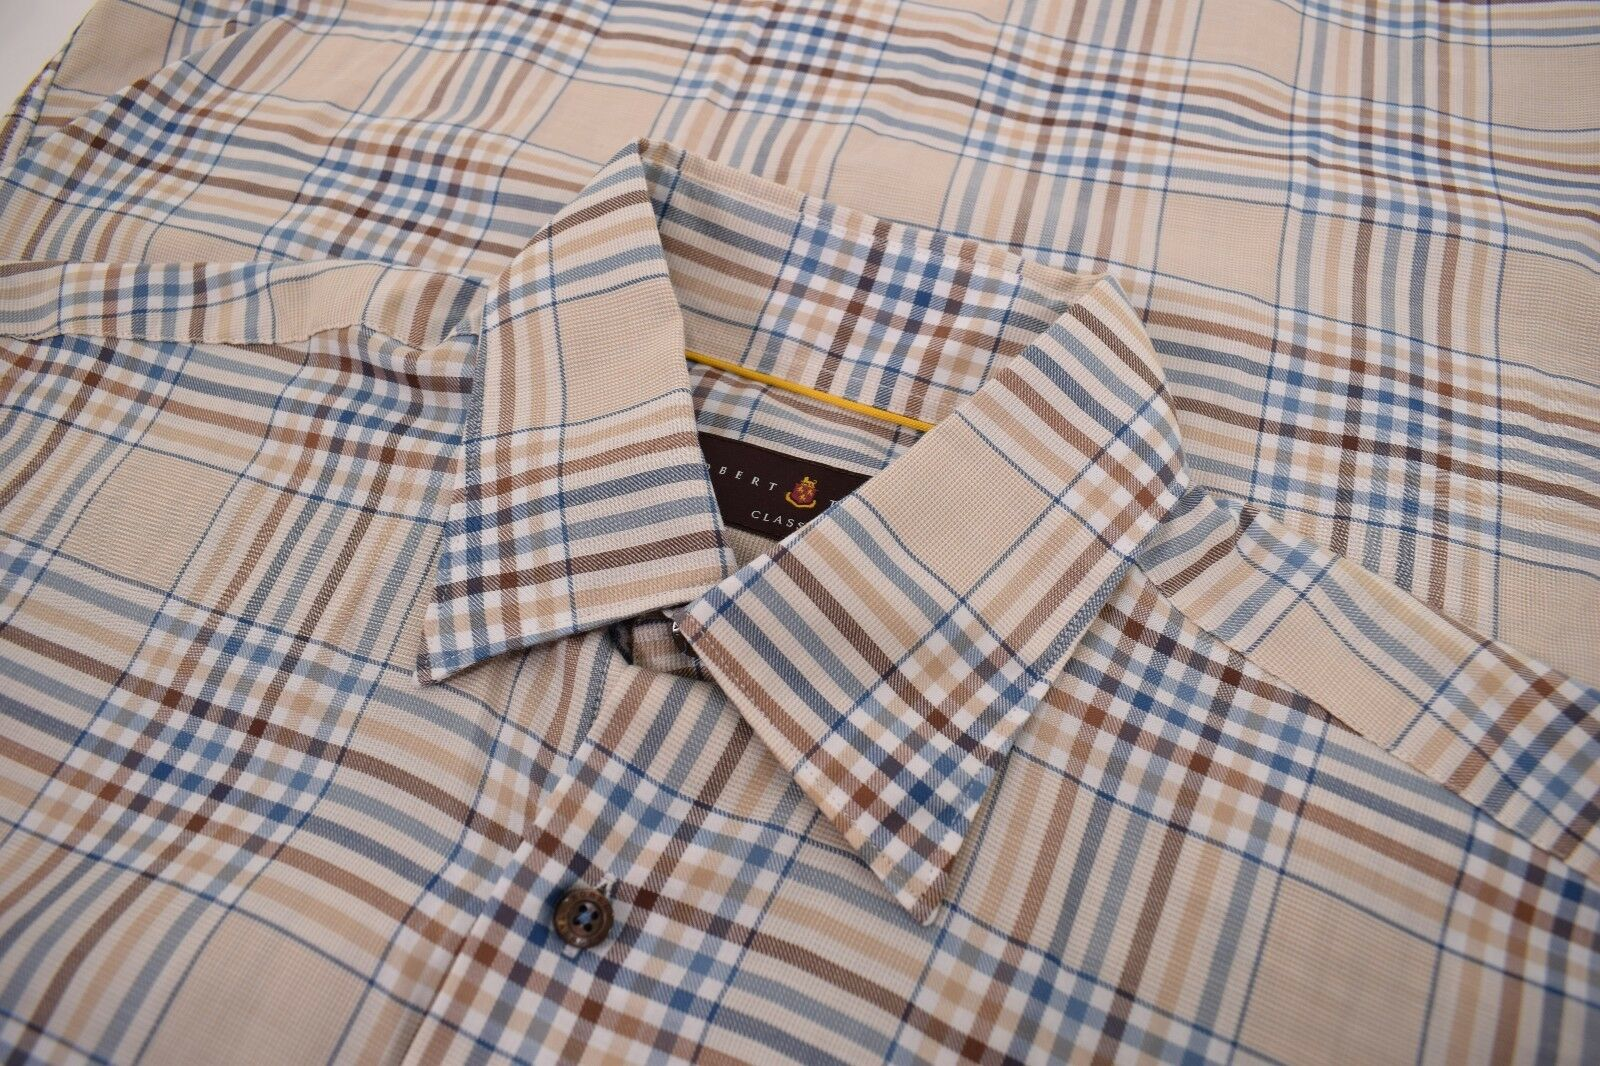 Robert Talbott NWT Button Down Dress Shirt Size M In Light Brown & bluee Plaid